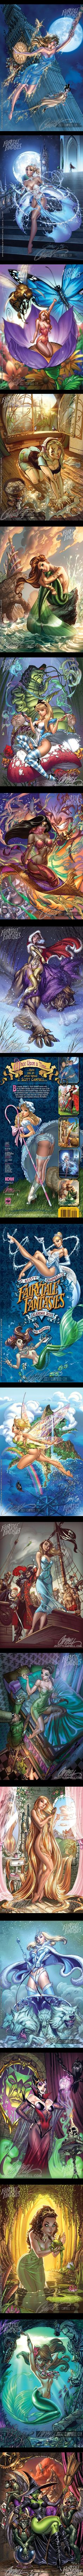 """""""Fairy Tale Fantasies"""" is the new 2012 sexy calendar of the Disney Princesses Pin-Ups by the great illustrator J. Beautiful of course. Some a bit risque but beautiful! Punk Disney, Art Disney, Disney Diy, Disney Girls, Disney Love, Sexy Cartoons, Disney Cartoons, Pin Up, Disney And Dreamworks"""